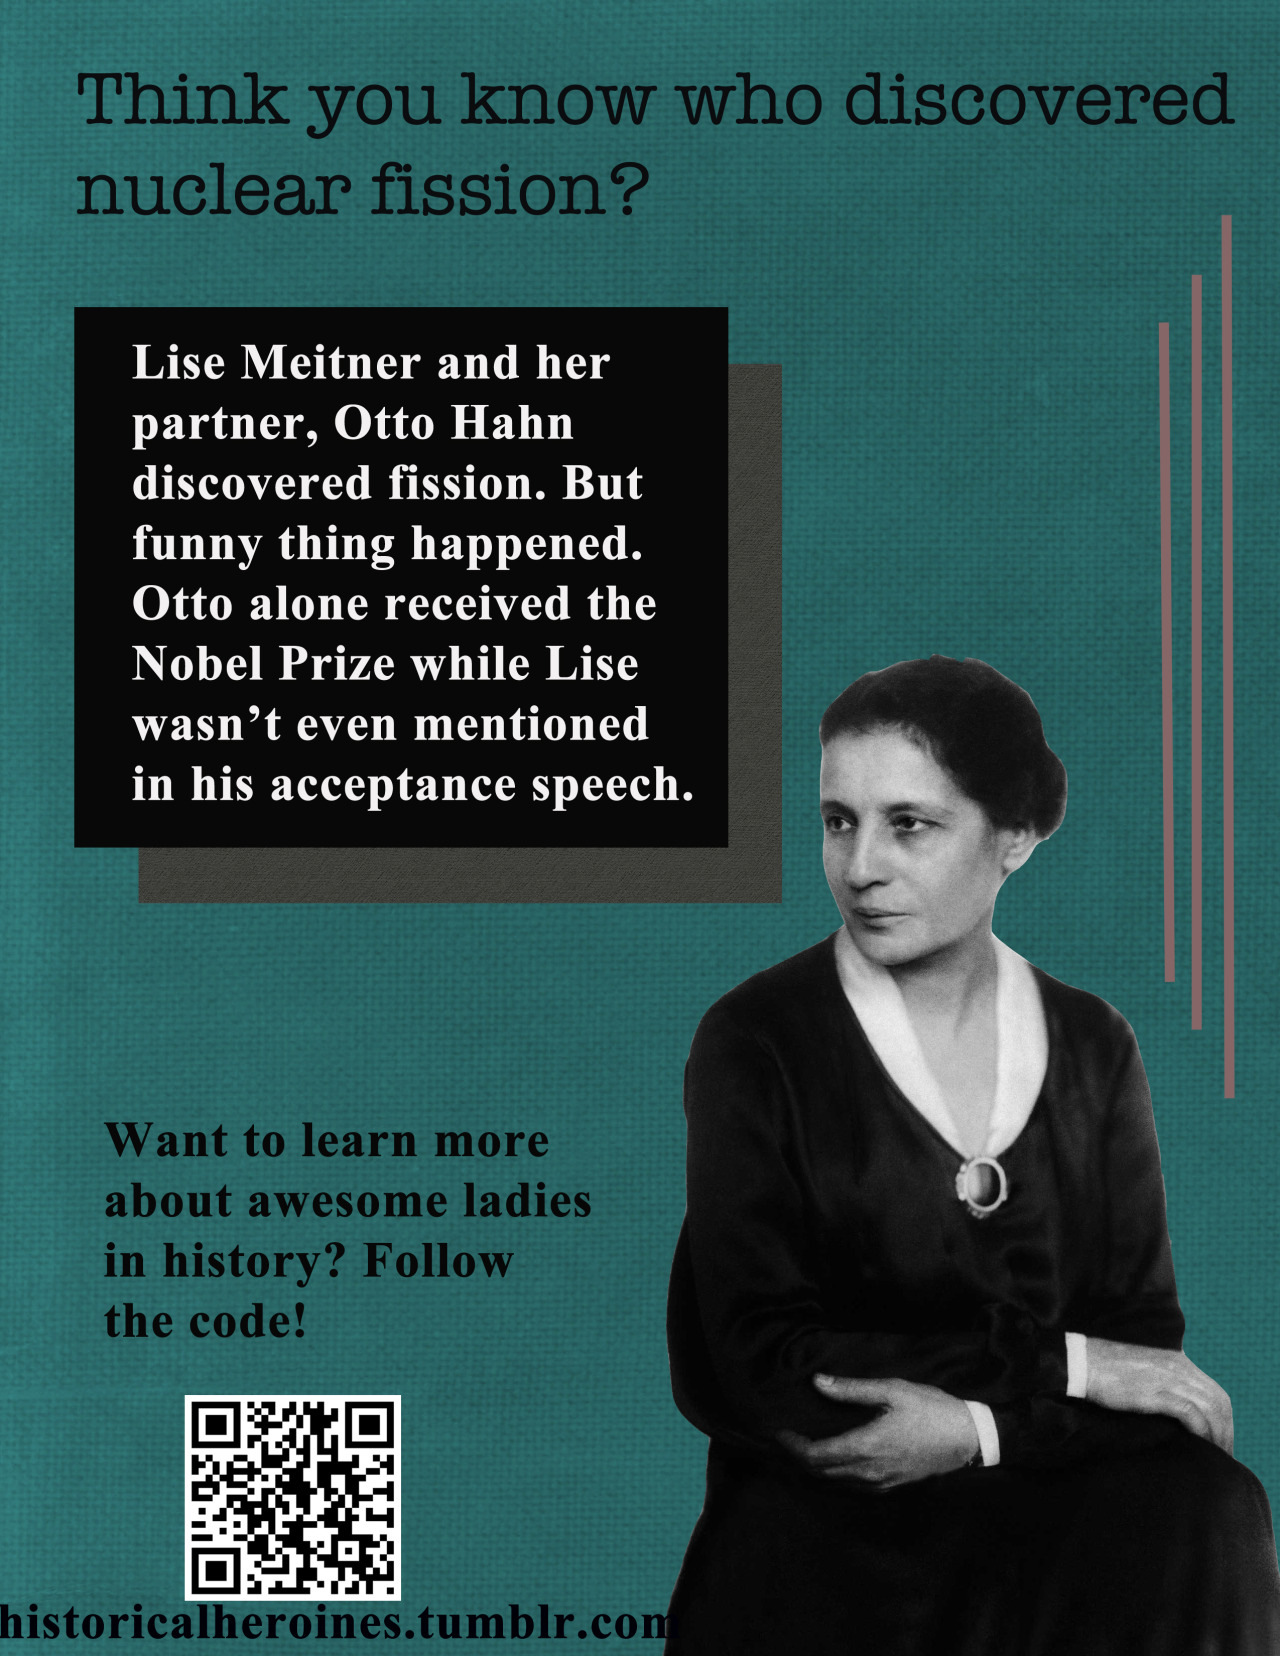 "historicalheroines:  Lise Meitner helped make one of the most important discoveries of the 19th century, and yet her male partner got all the credit for their work. Despite the fact that she had to flee Austria in 1938 due to the Nazi annexation, she continued her work and persevered through persecution and sexism. The inscription on her tombstone, which was written by her nephew Otto Frisch (who helped her discover and name nuclear fission), reads ""Lise Meitner: a physicist who never lost her humanity."""